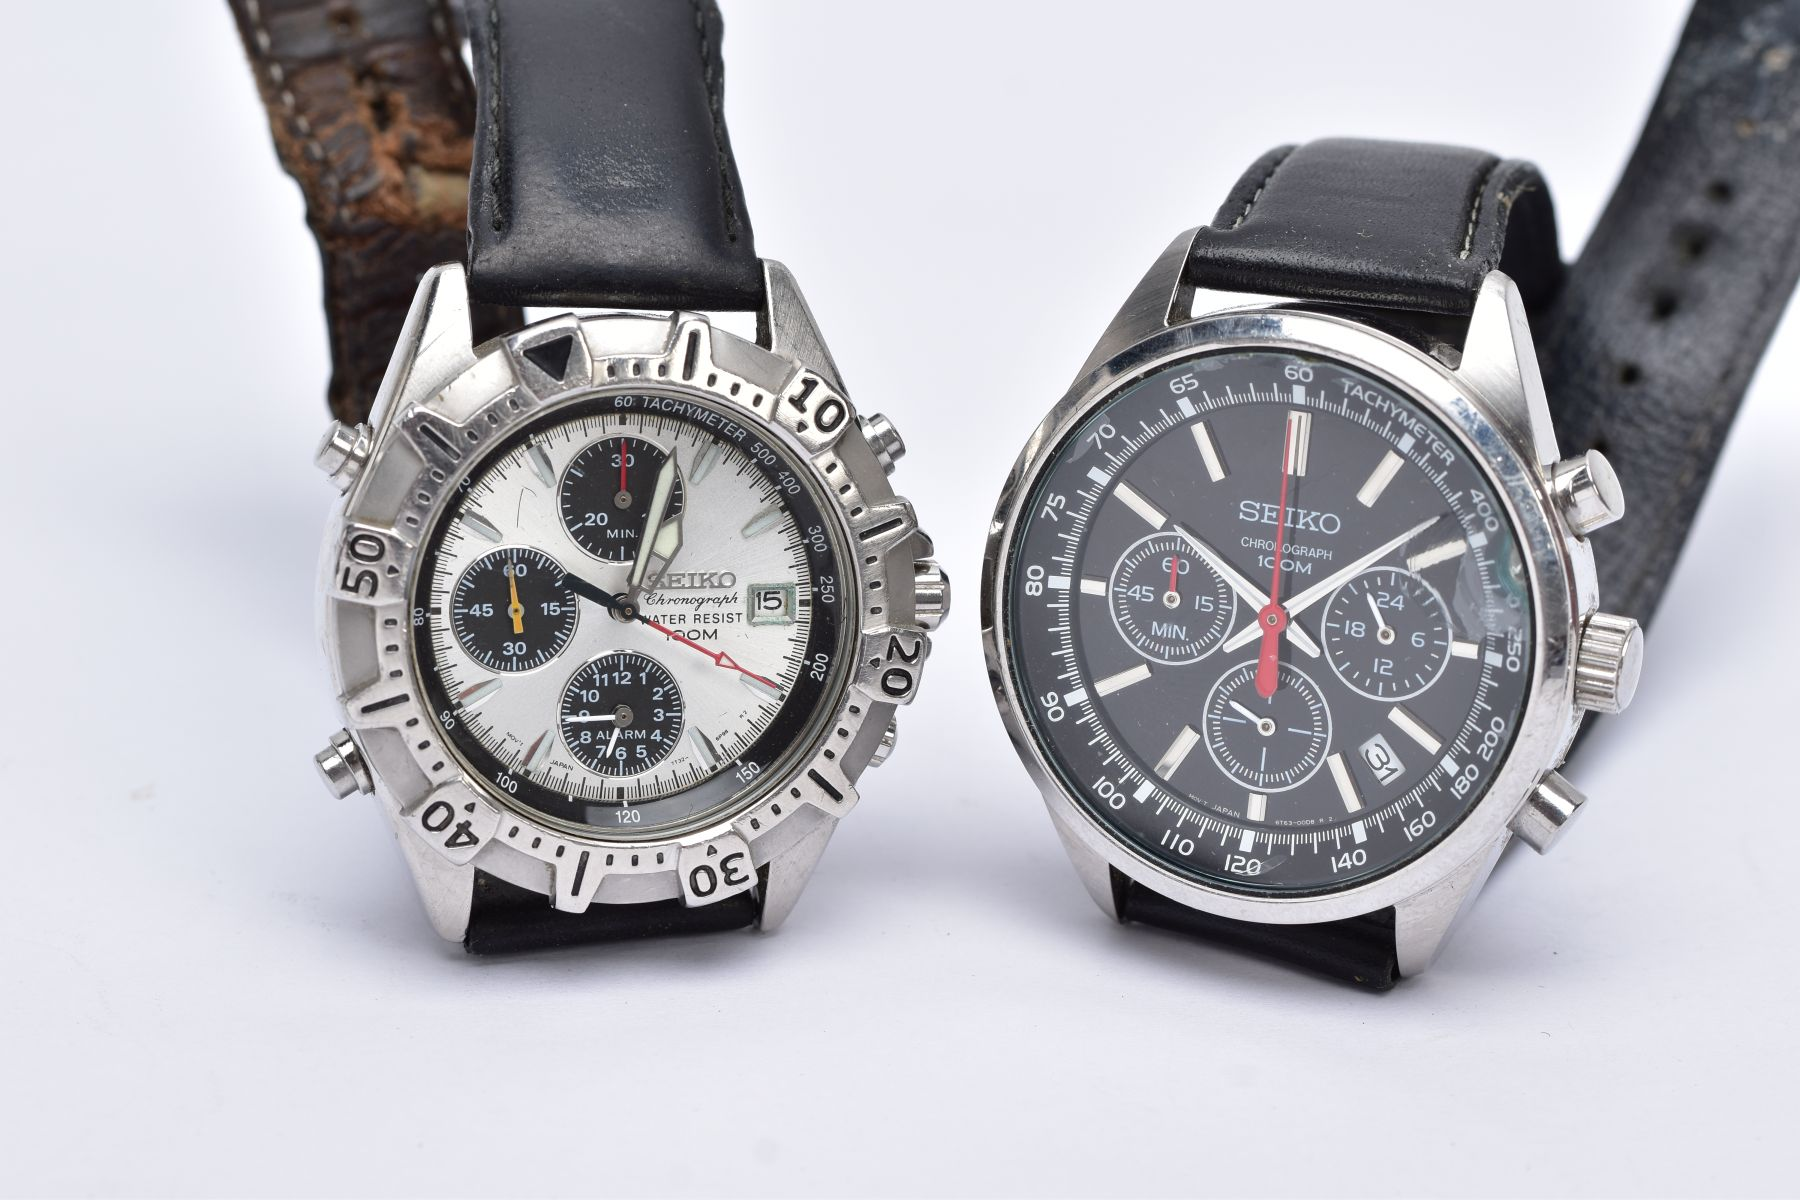 TWO GENTS 'SEIKO CHRONOGRAPH' WRISTWATCHES, the first with round black dial signed 'Seiko - Image 5 of 5